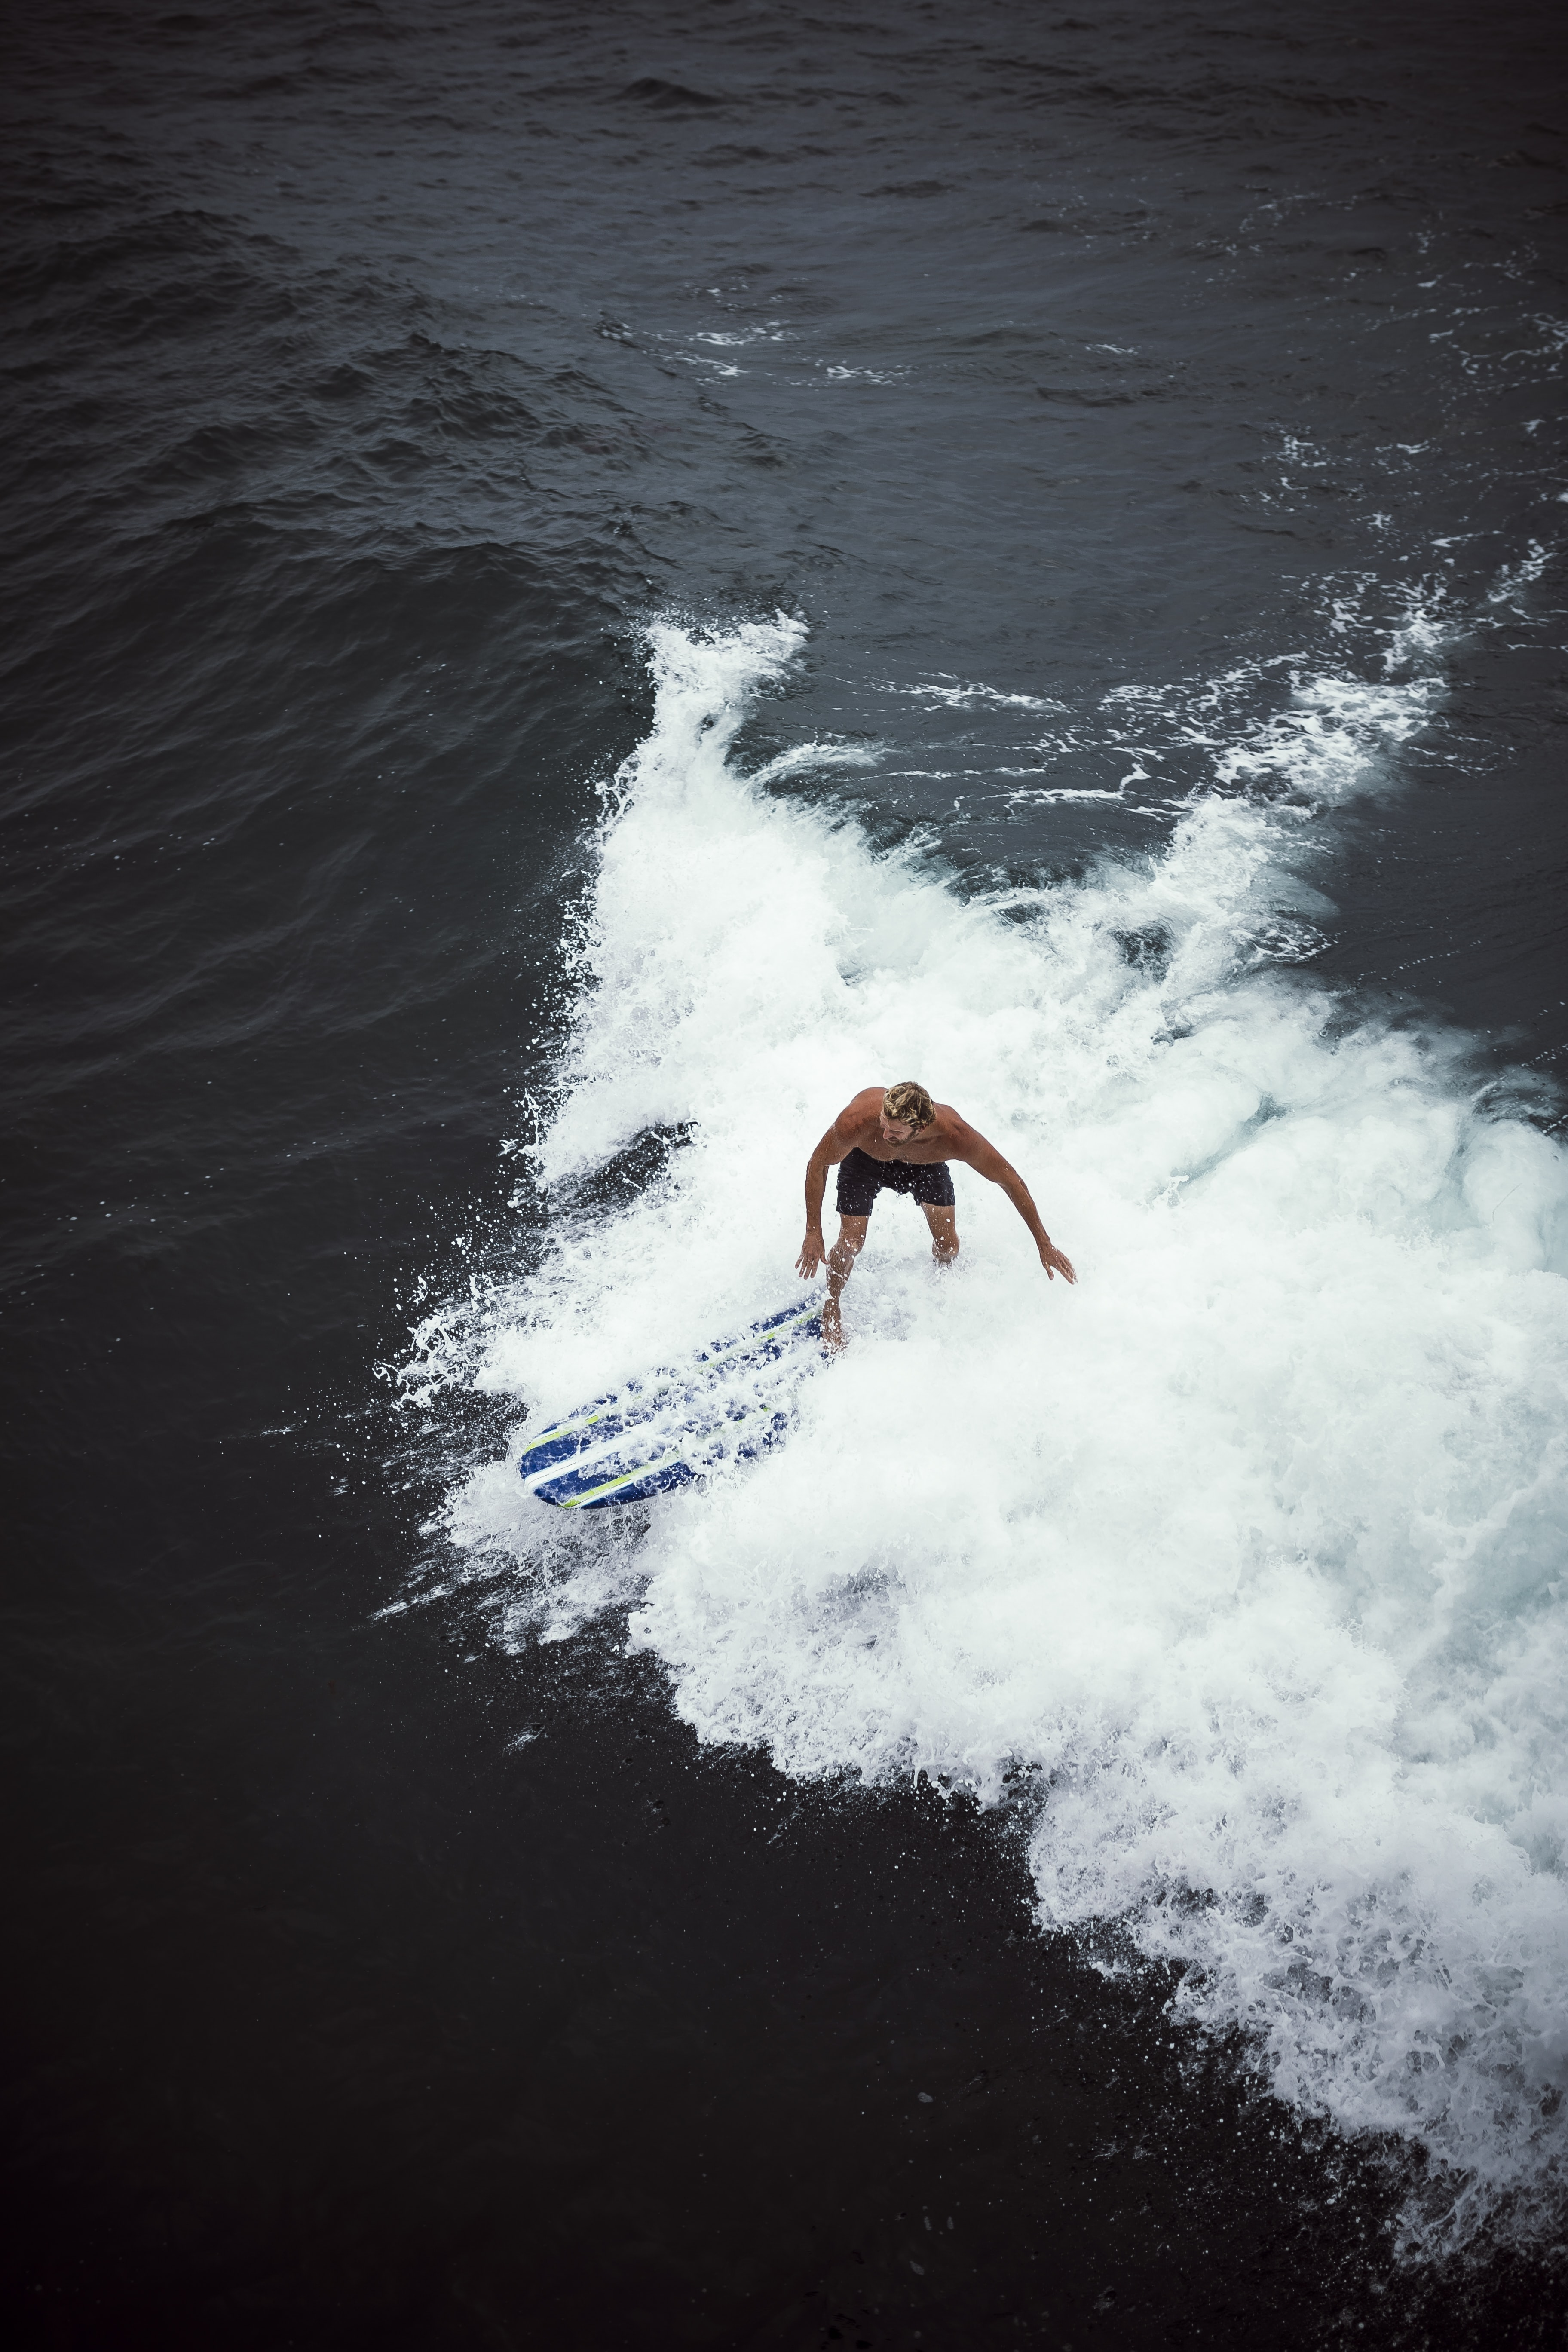 person surfboarding on waves